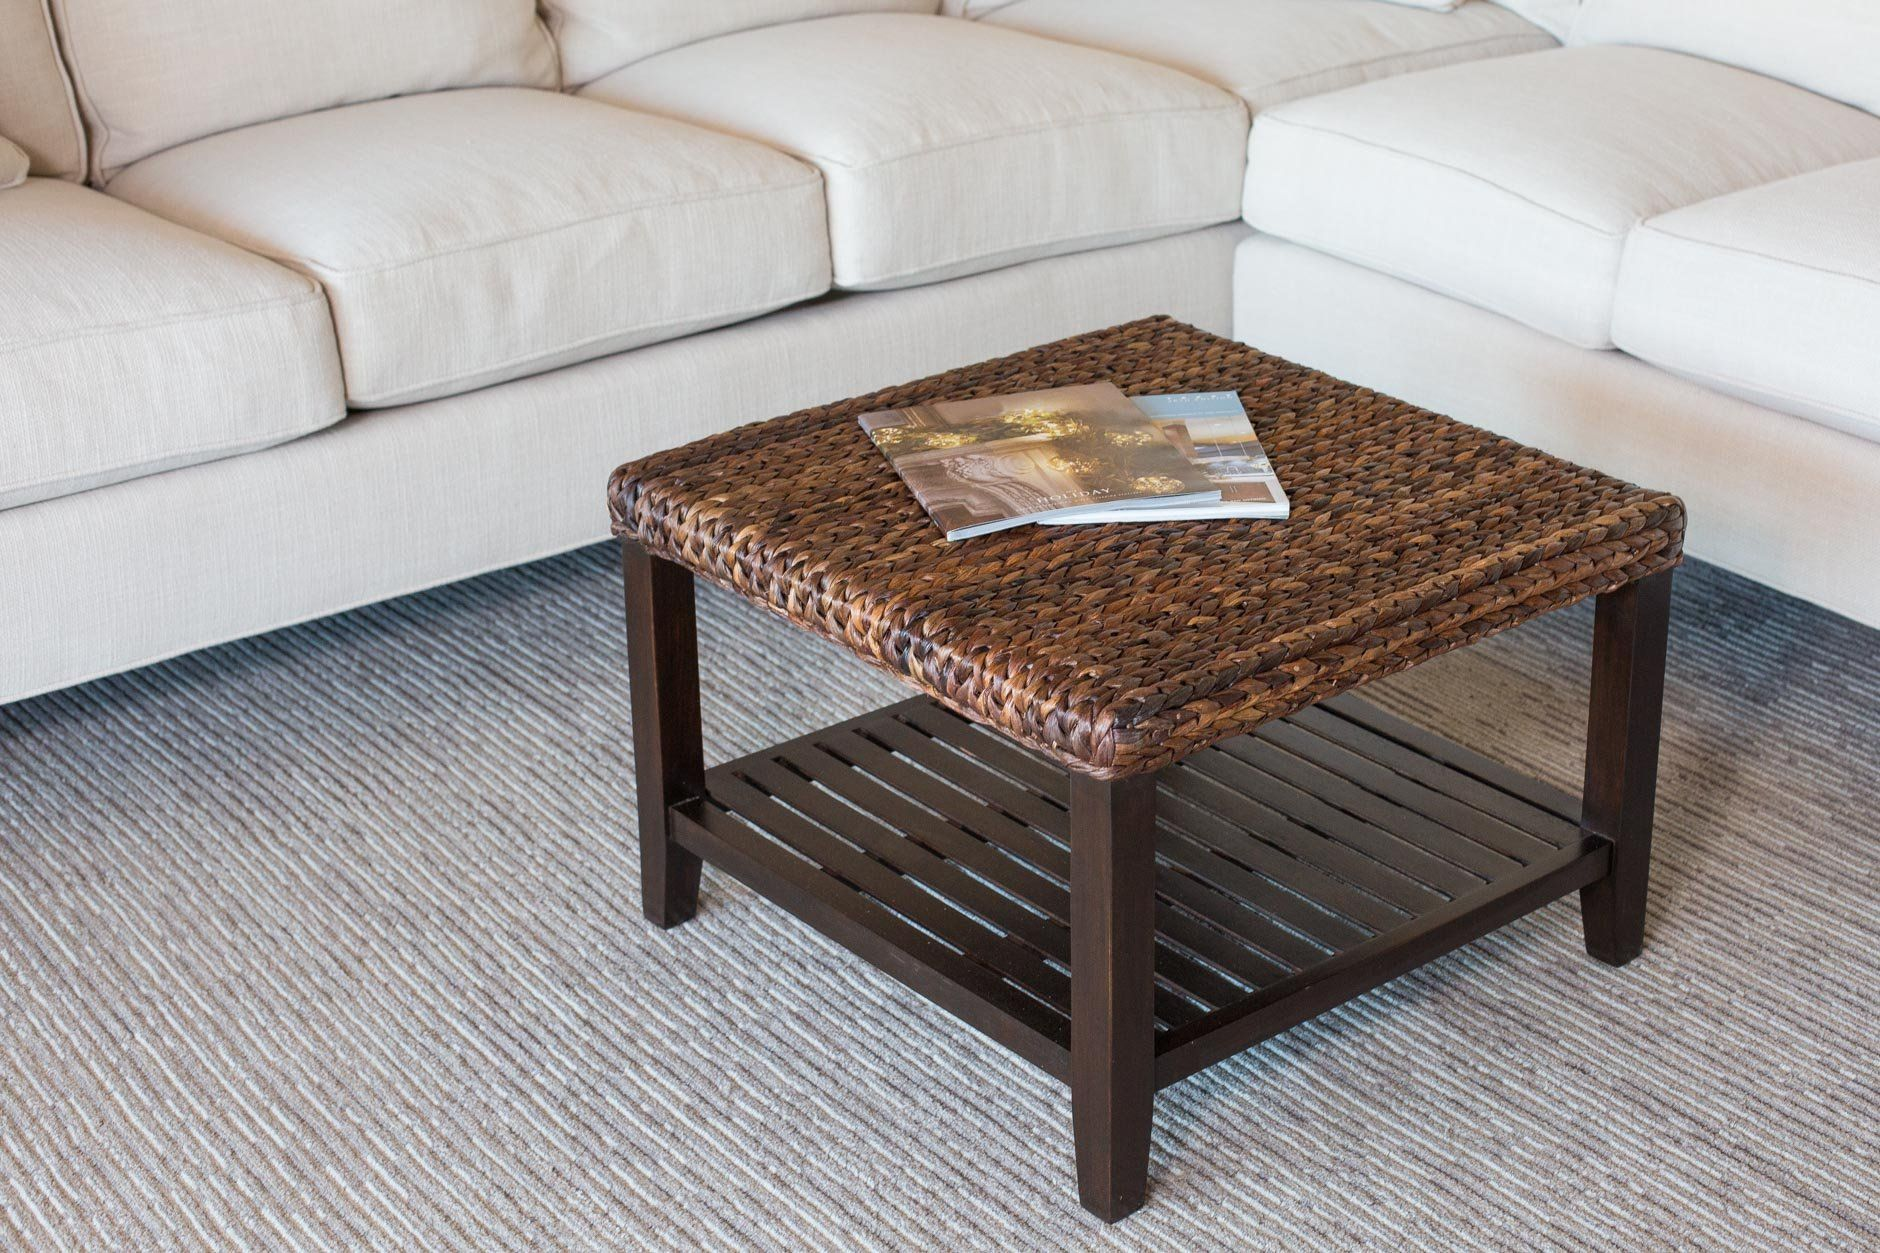 Birdrock Home Woven Seagrass Coffee Table Mahogany Wood Frame Fully Assembled Want Addition Wicker Coffee Table Coffee Table Coastal Living Room Furniture [ 1253 x 1880 Pixel ]